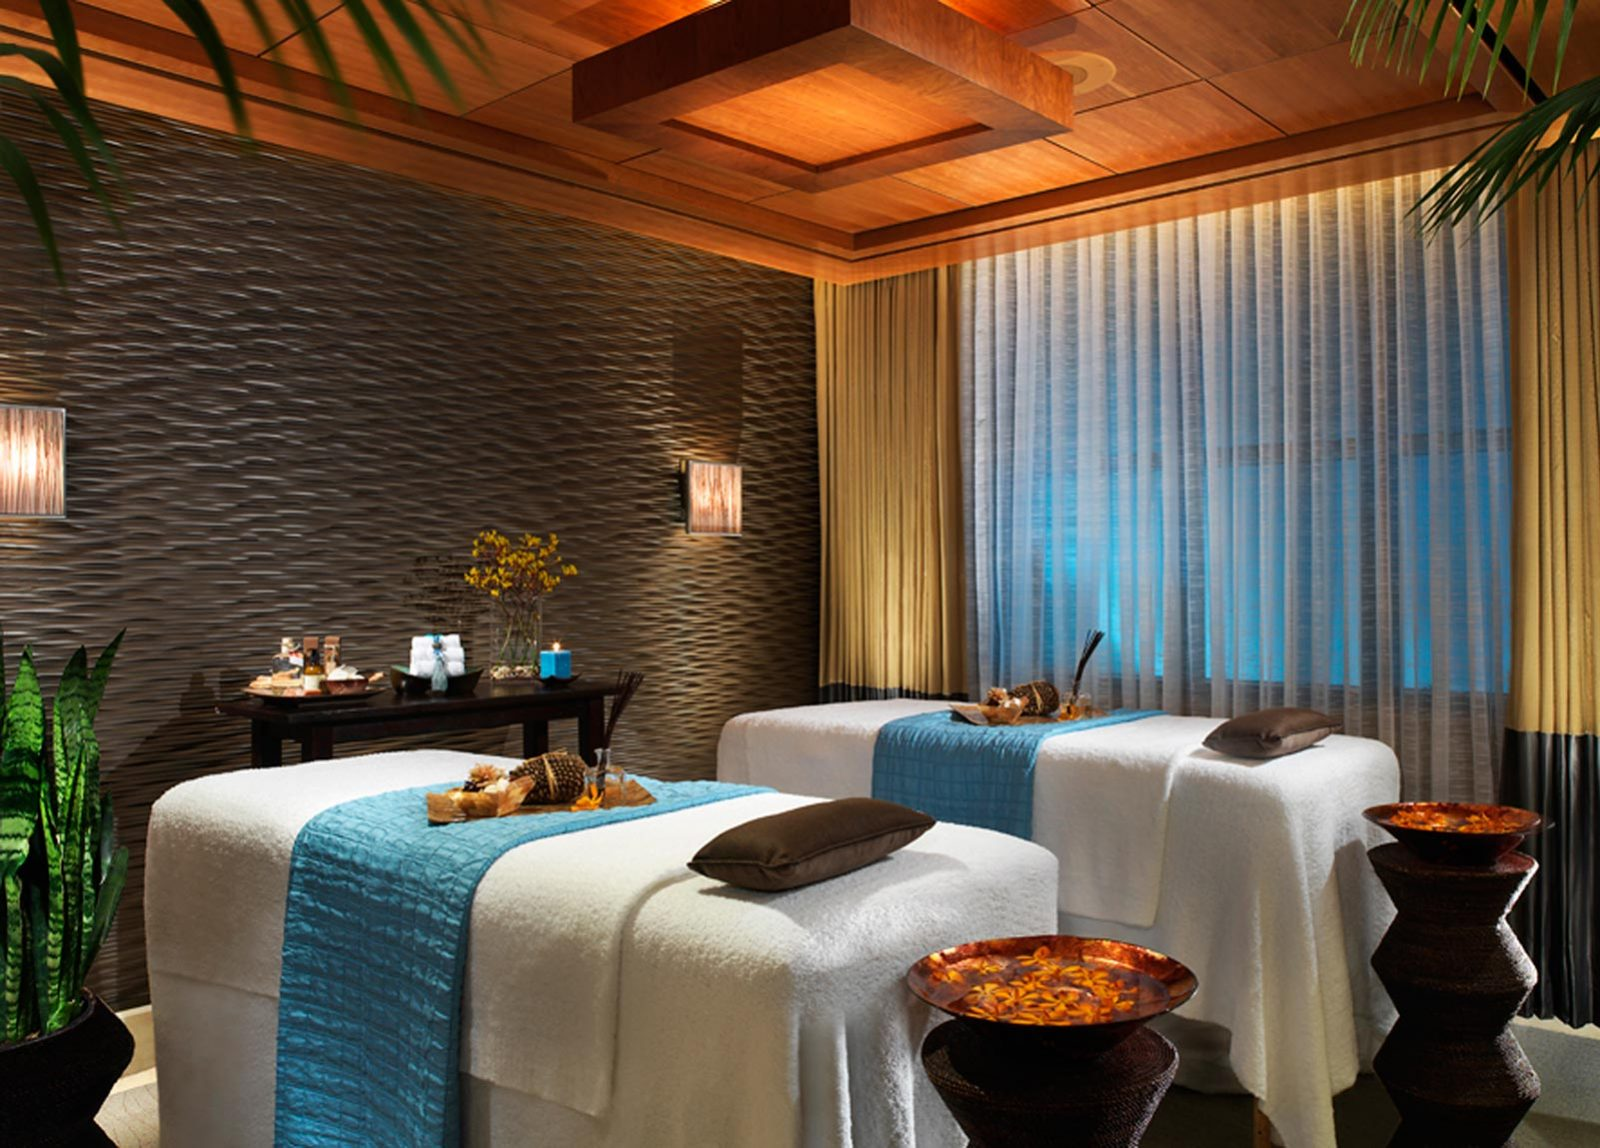 Luxurious massage facilities at Qua Baths and Massage inside Ceasar's Palace Las Vegas